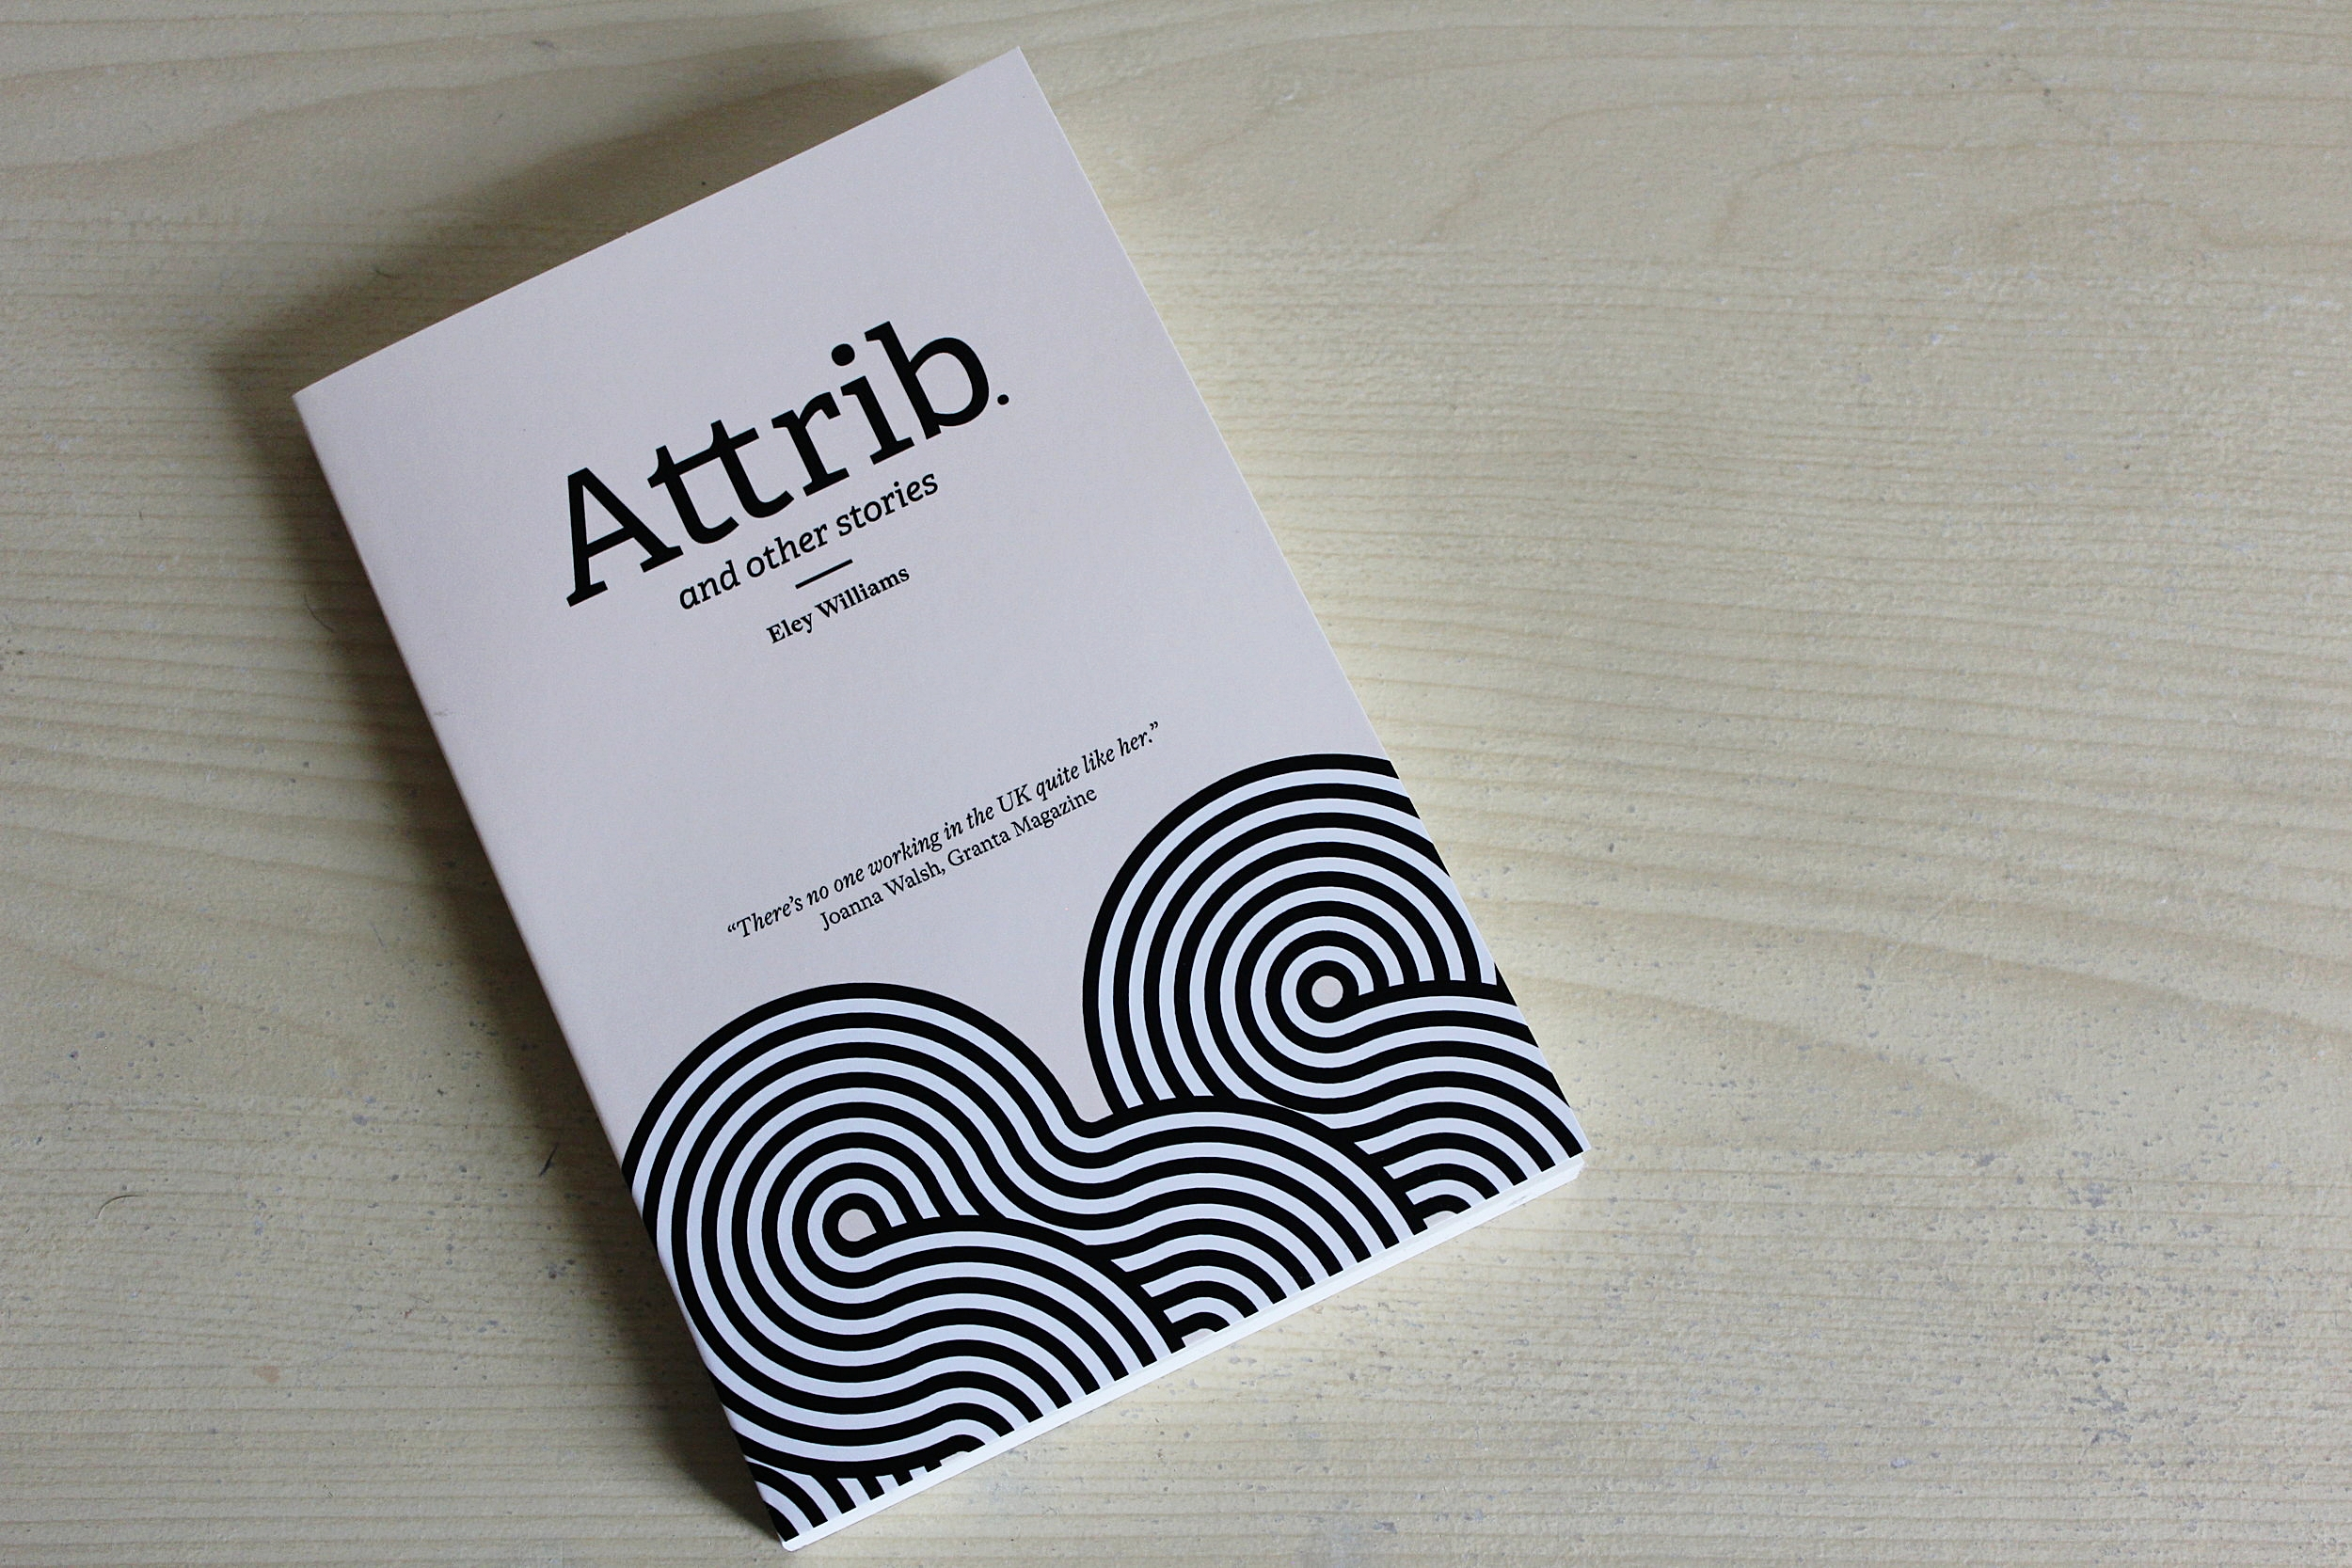 Attrib and Other Stories – Paperback/eBook